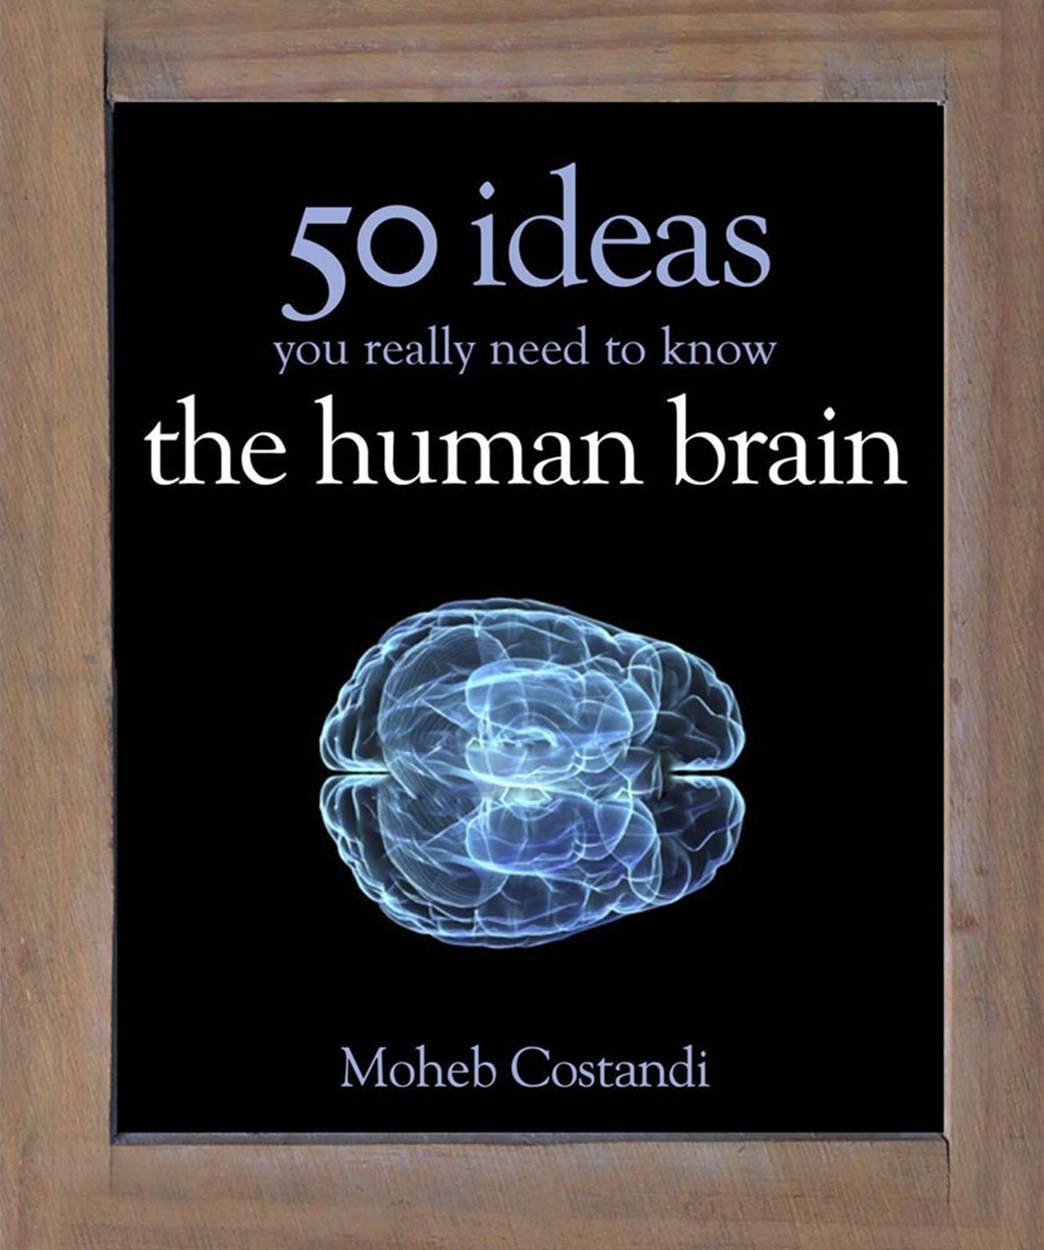 50 Human Brain Ideas You Really Need to Know